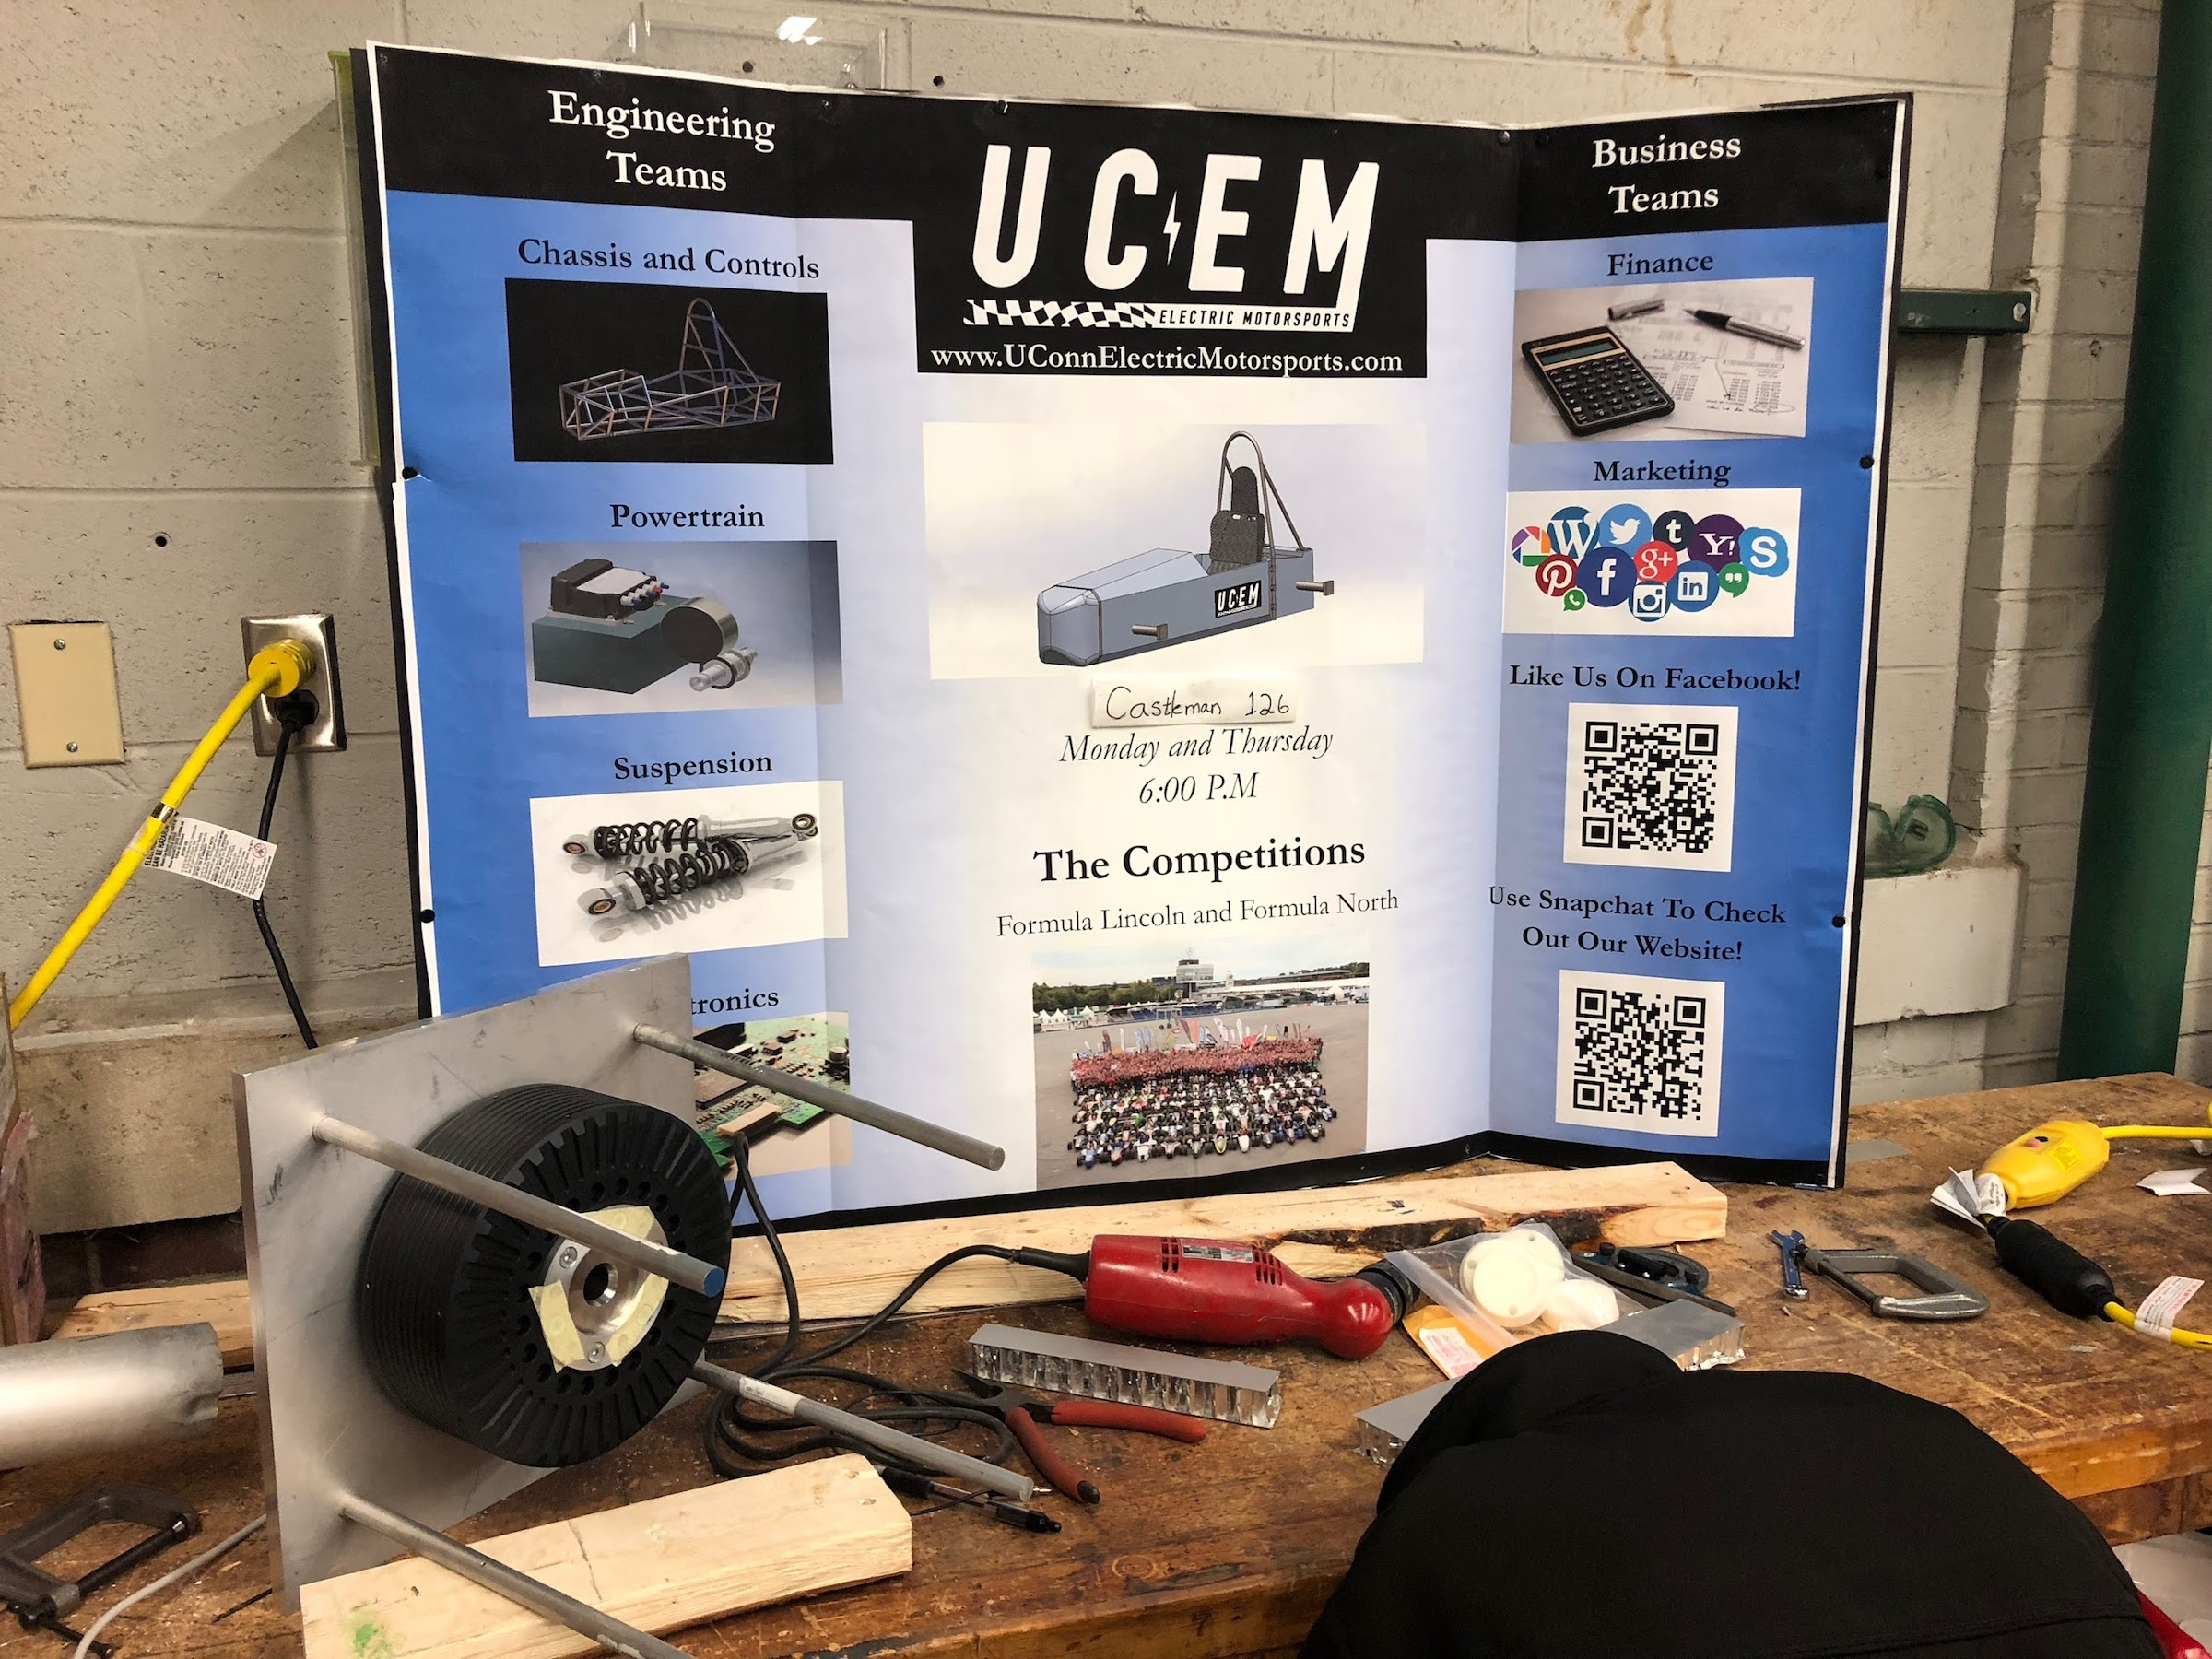 The new University of Connecticut electric motorsports (UCEM) club is constructing an electric race car which will feature a single seat and single motor with an aluminum honeycomb body. (Collin Sitz/The Daily Campus)